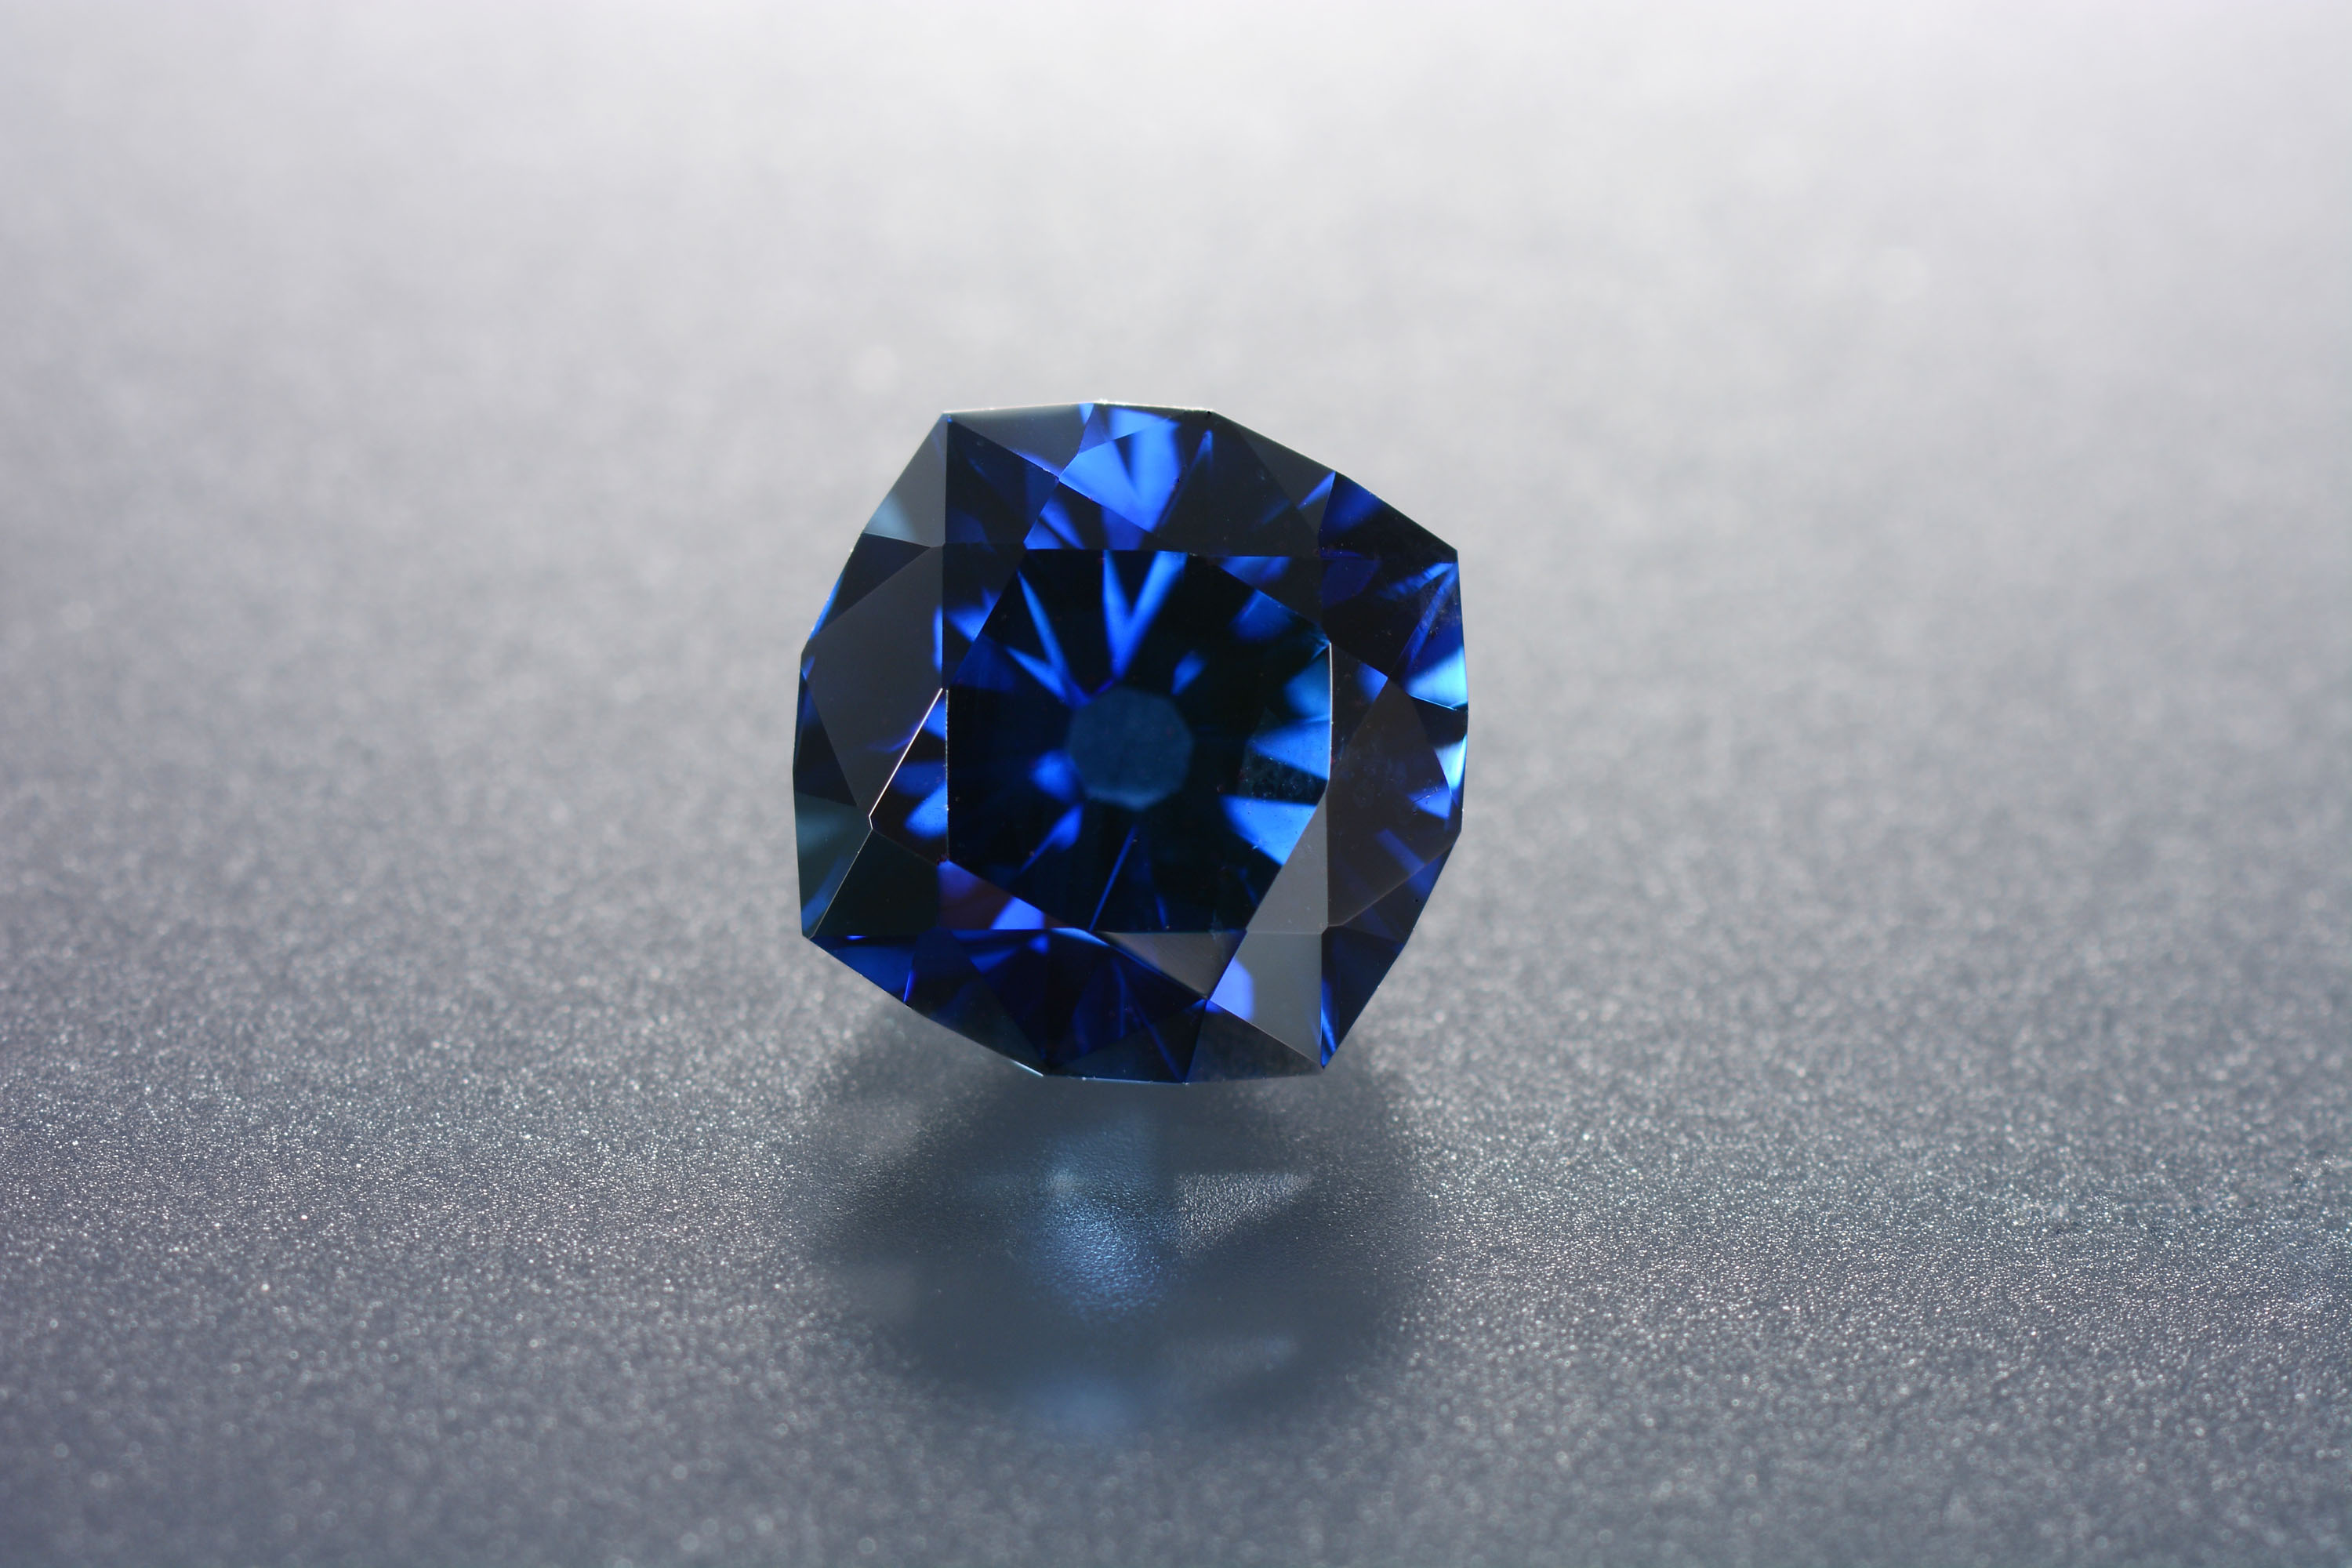 A Montana sapphire from the GIA reference collection was heated with pressure in South Korea and subsequently faceted. No damage occurred during polishing and cutting.